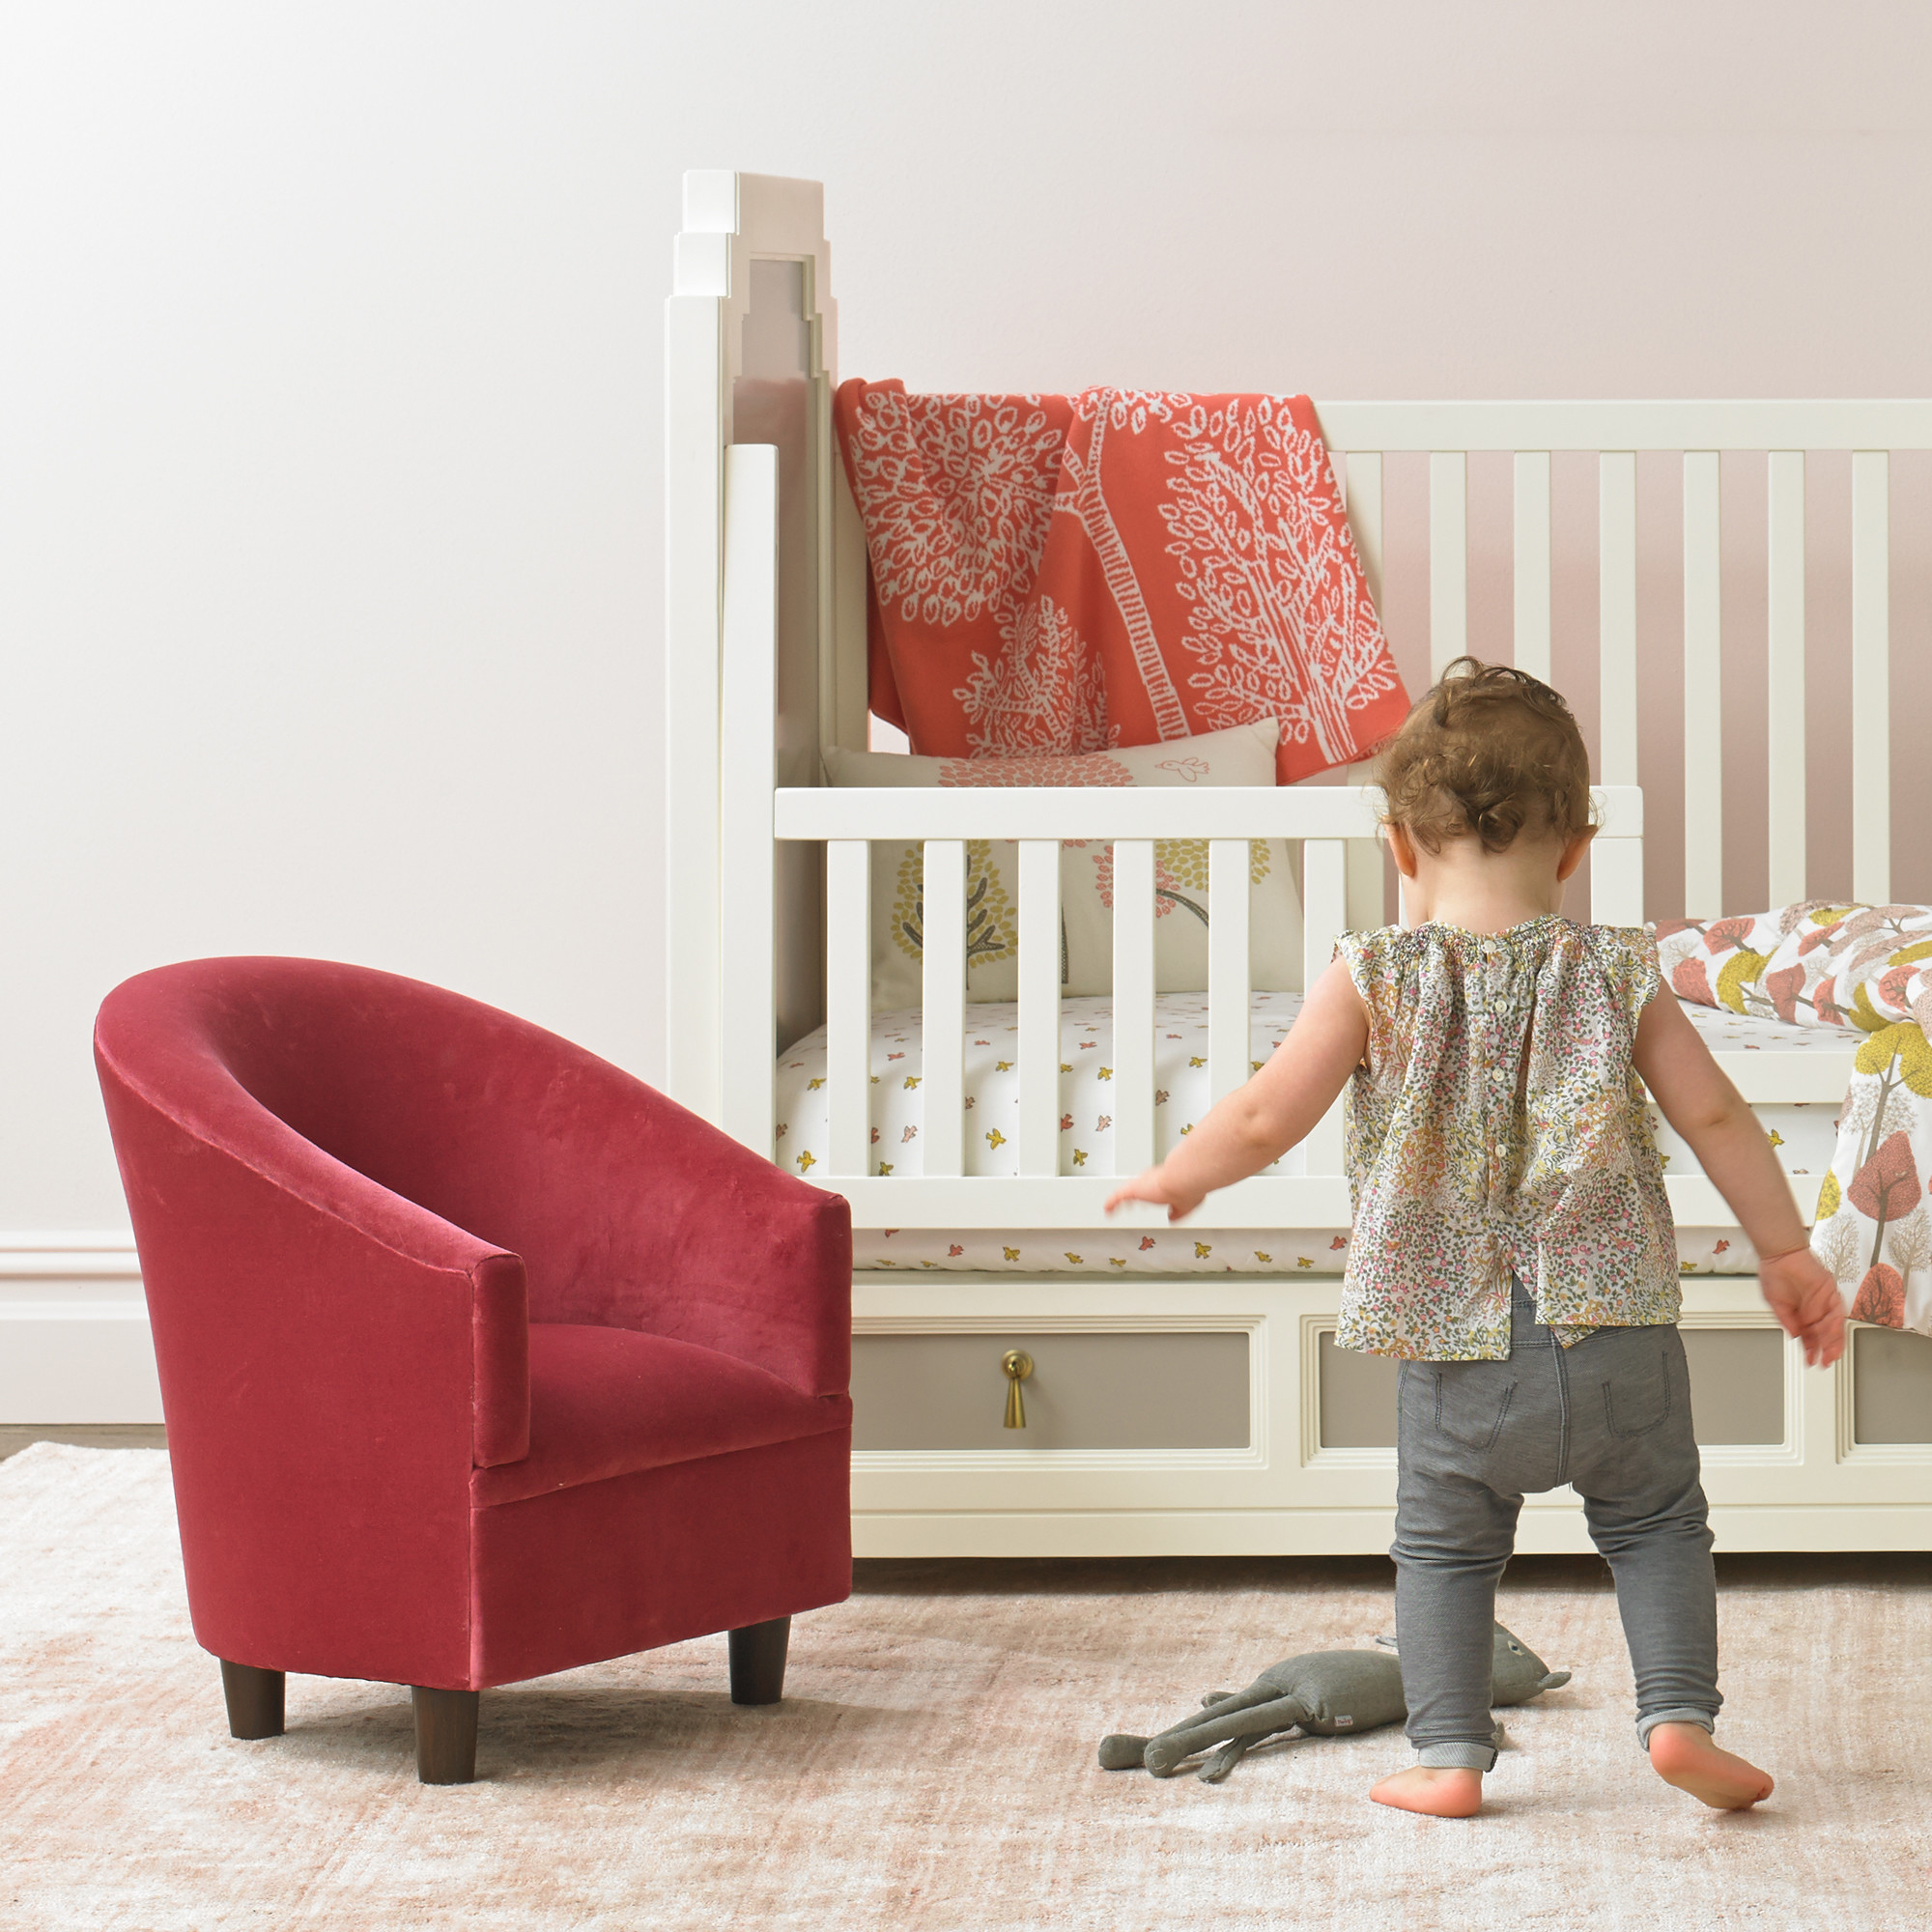 land of nod high chair doll metal cushions pint sized furniture that 39s on style project nursery